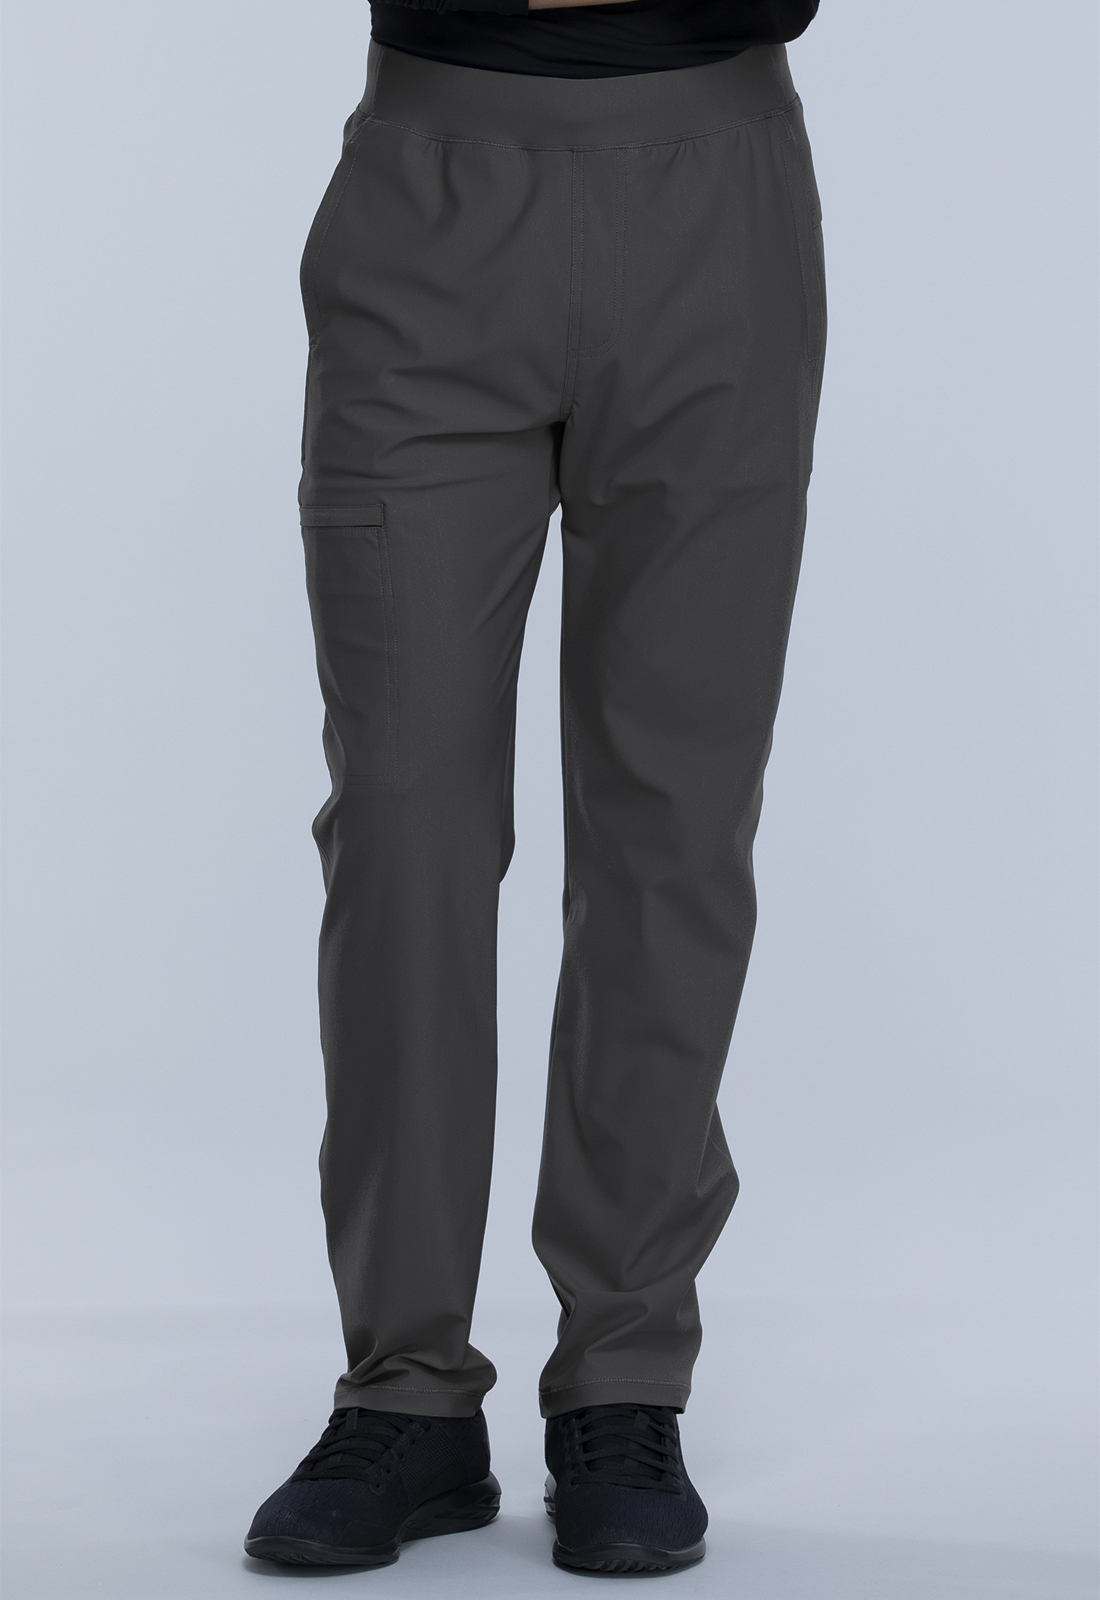 Men's Tapered Leg Pull-on Pant